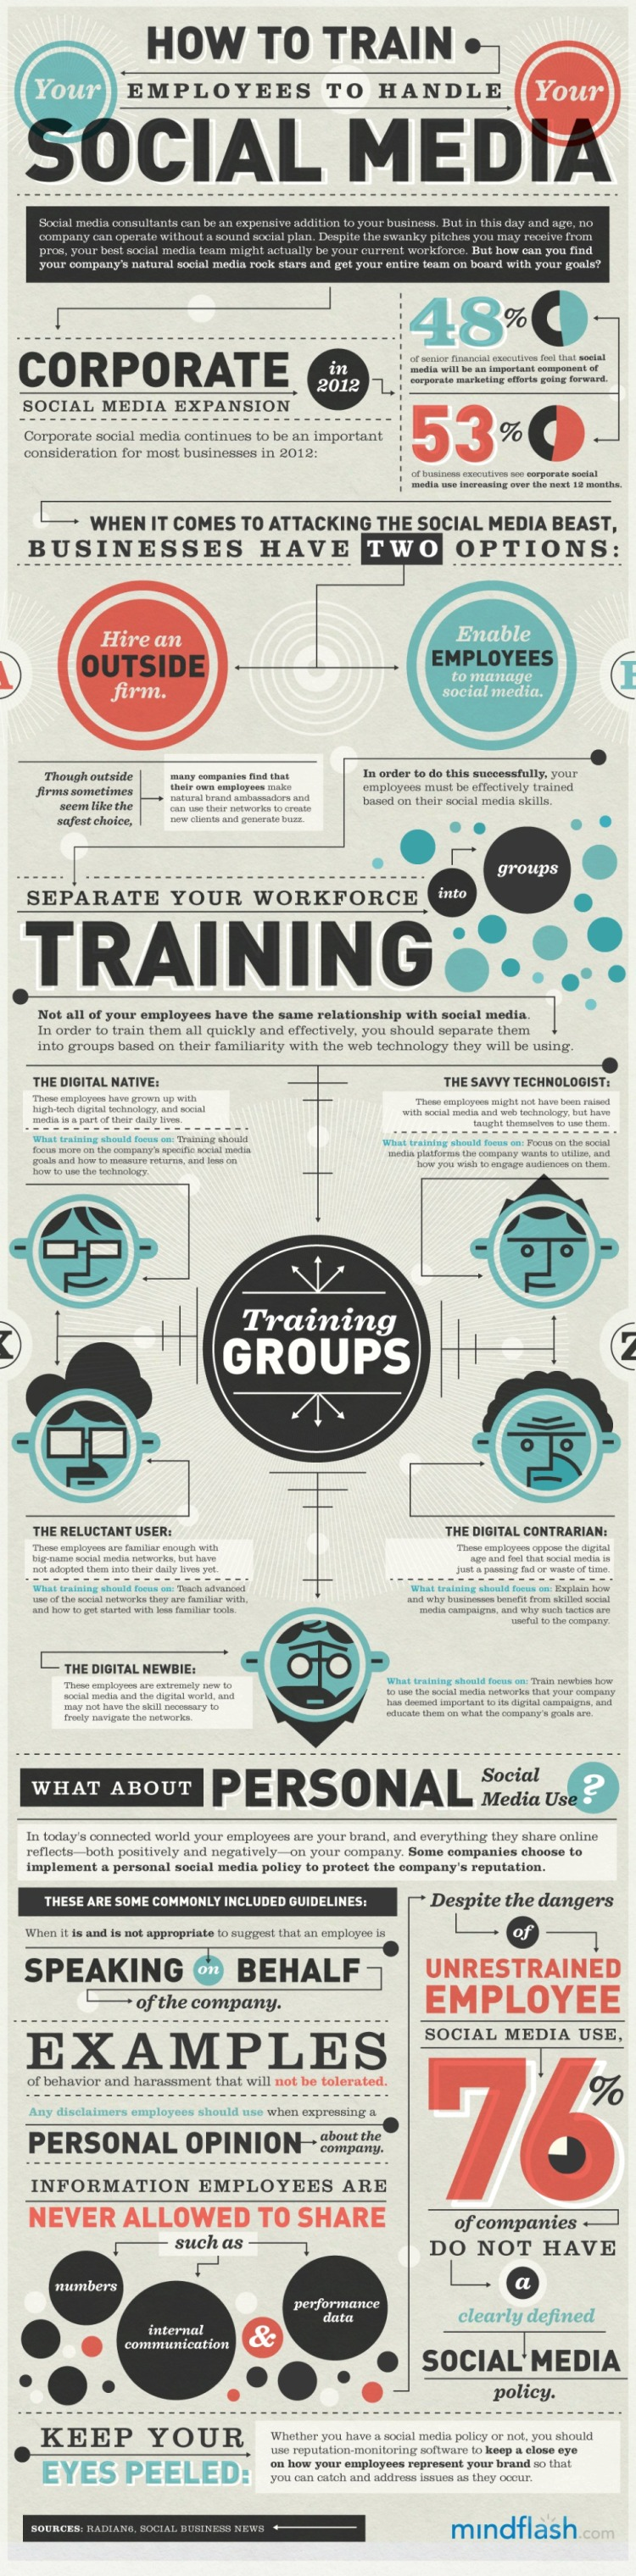 How to Train Employees in Social Media